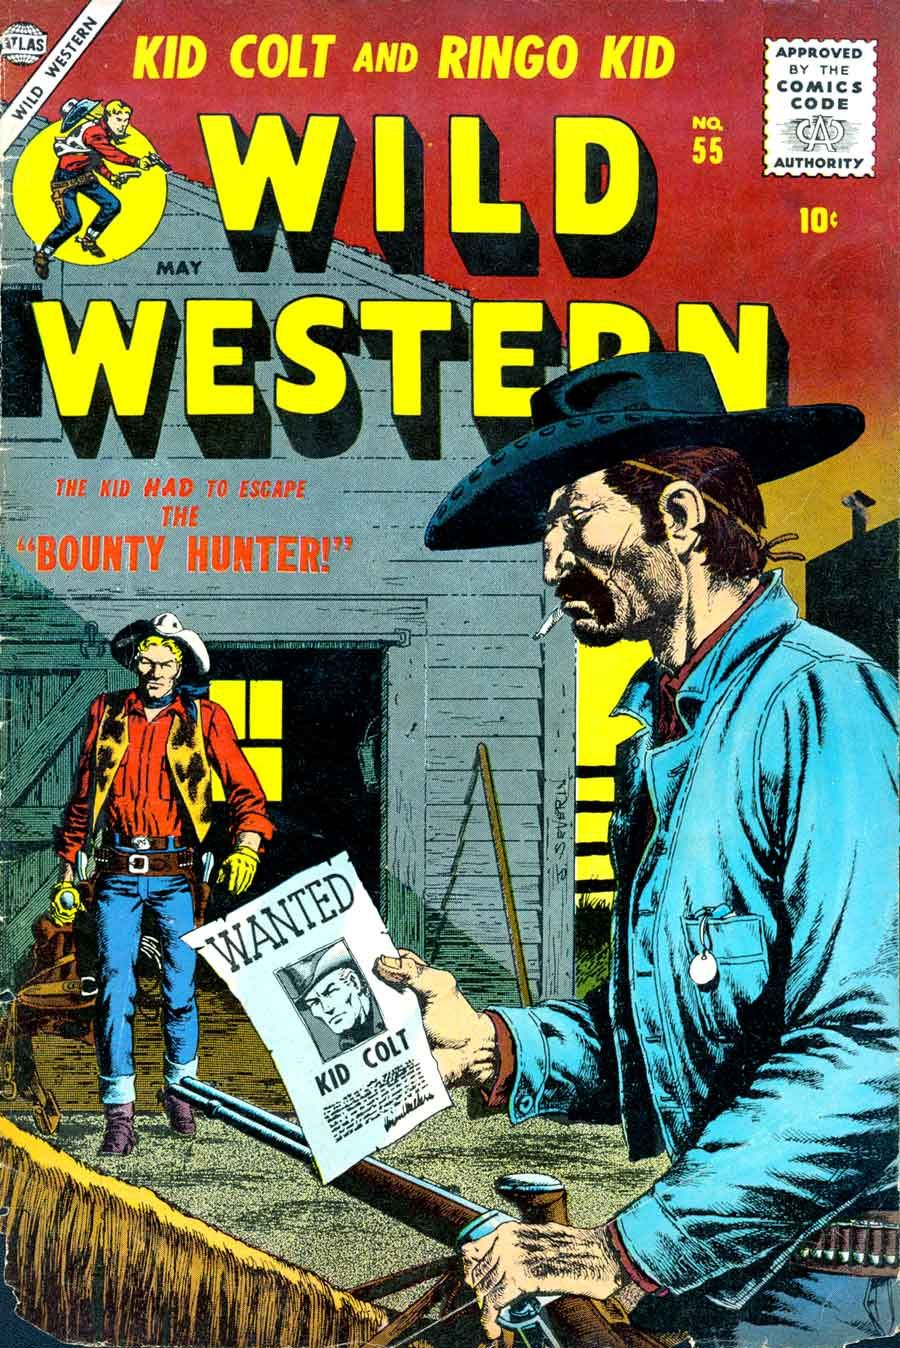 Image result for 1950's western comics